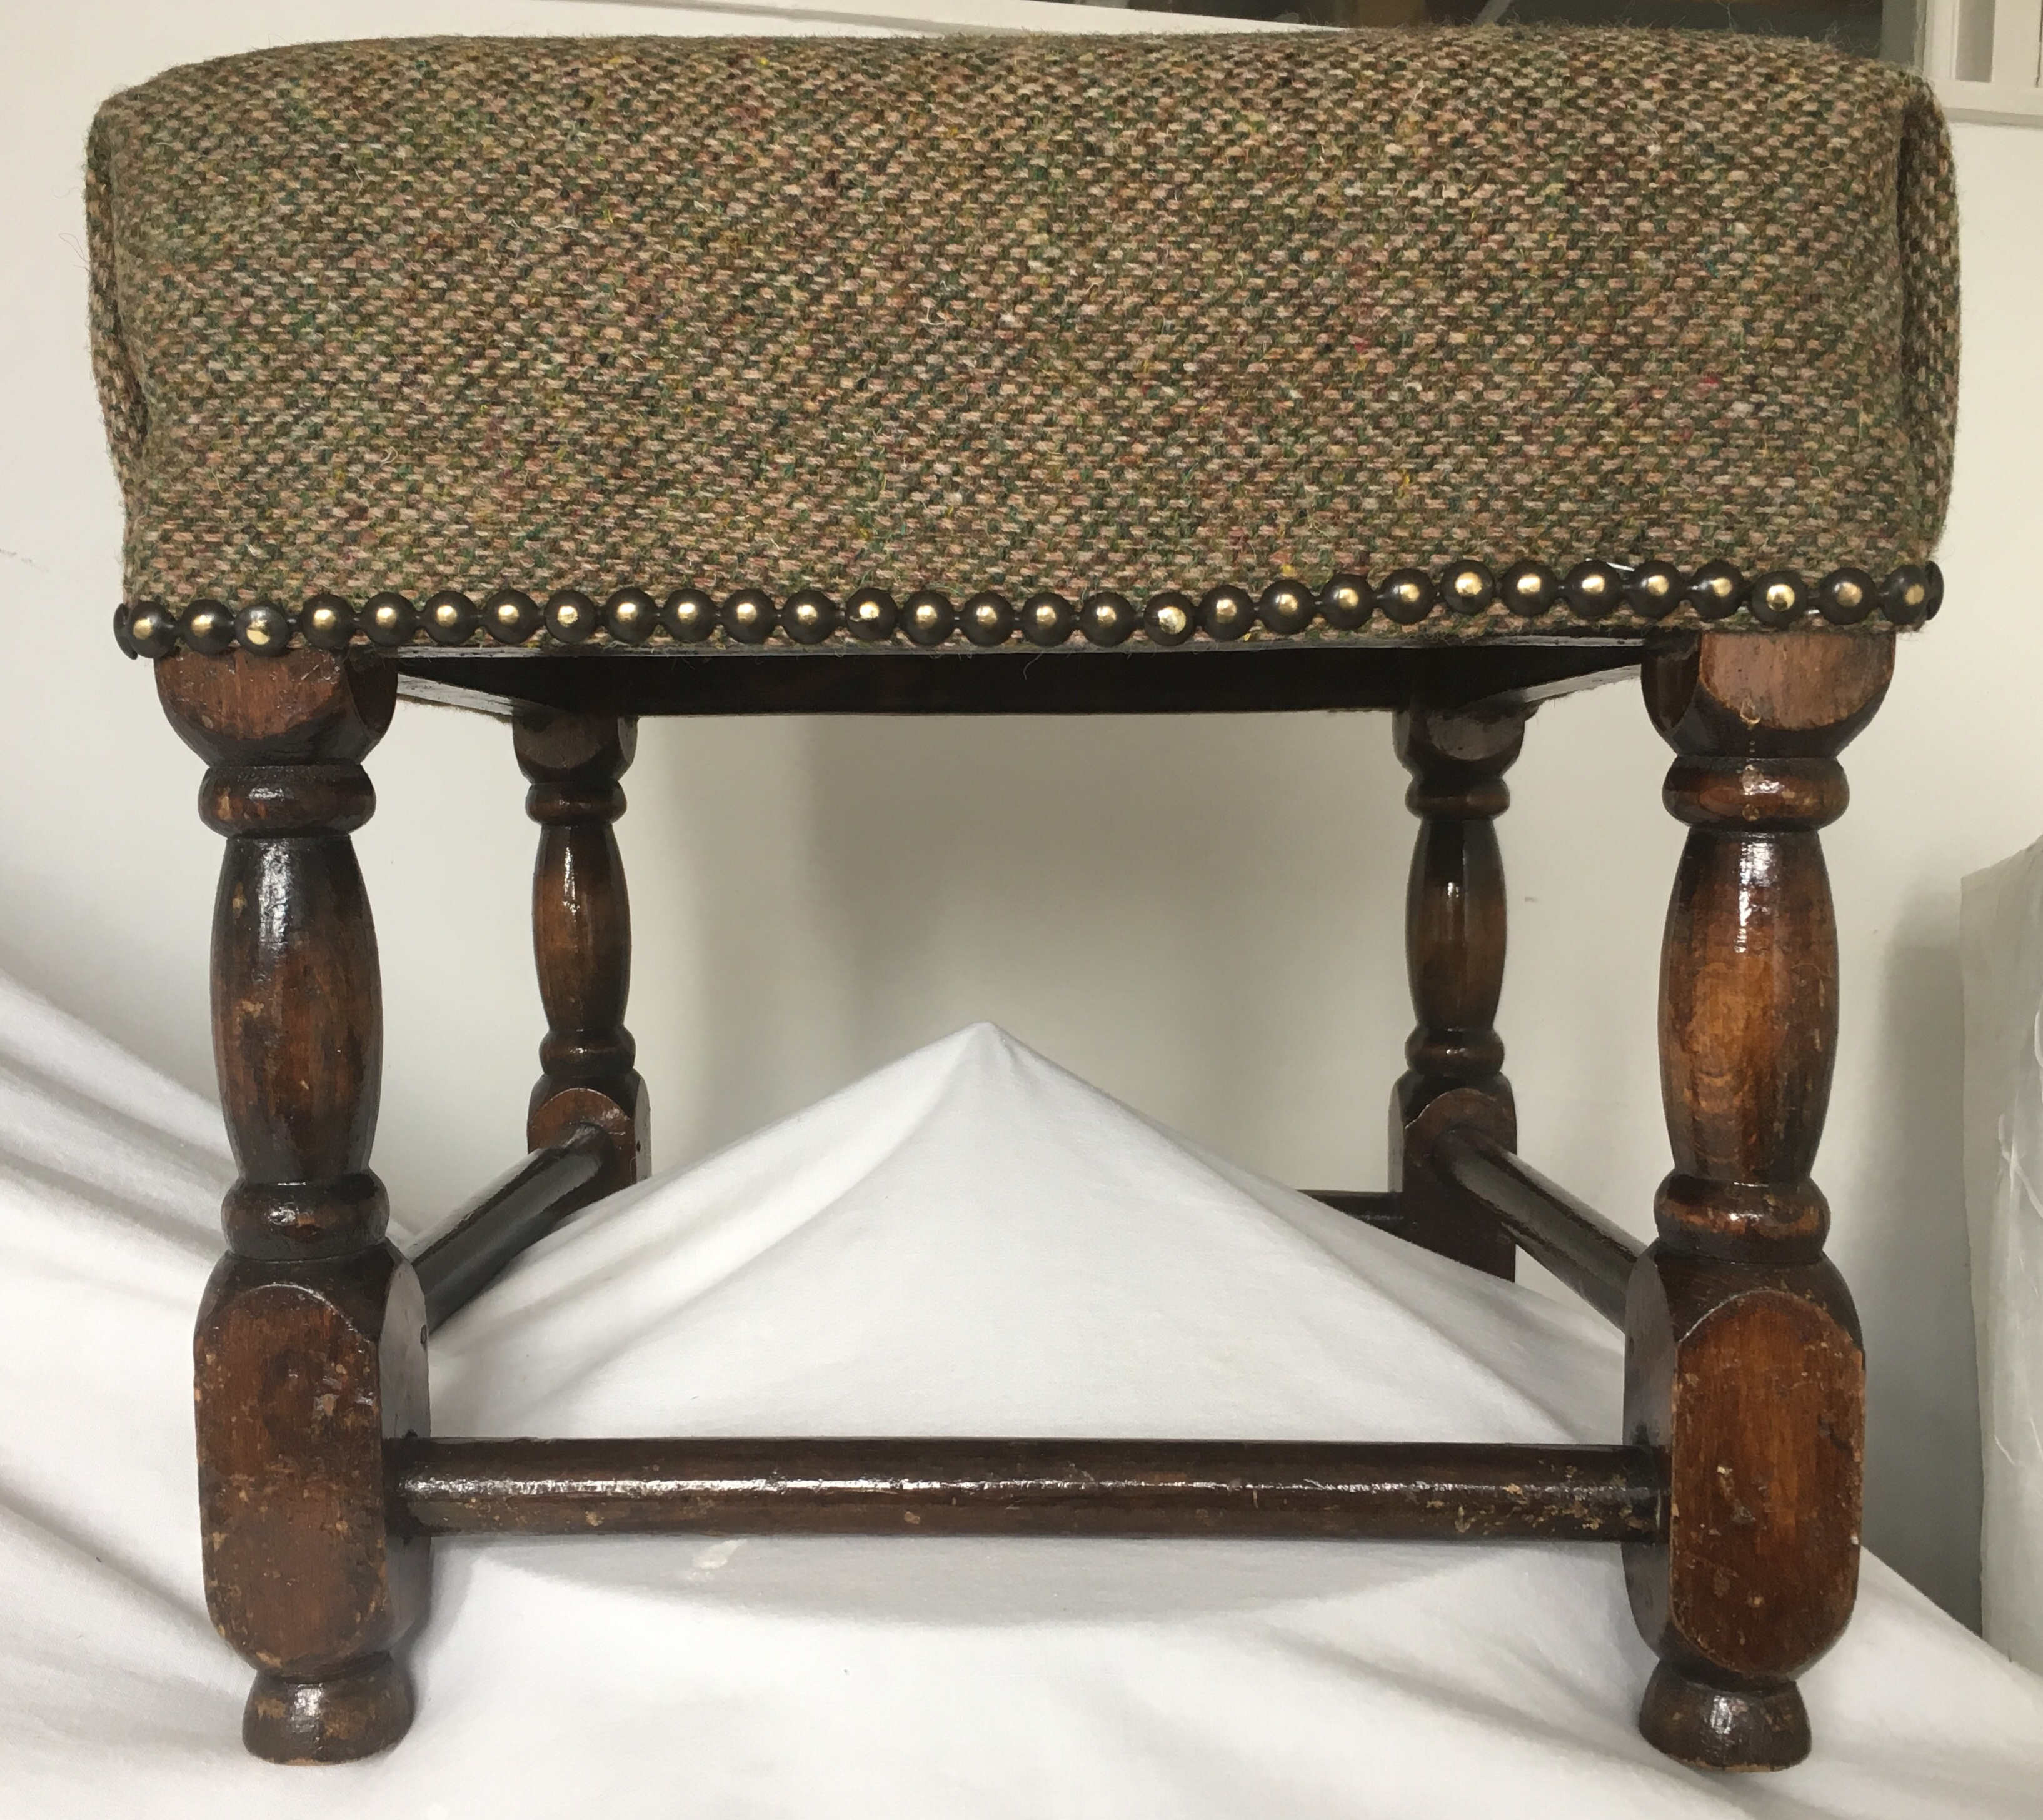 Refurbished footstool for client to order using tweed cloth and reupholstery materials.